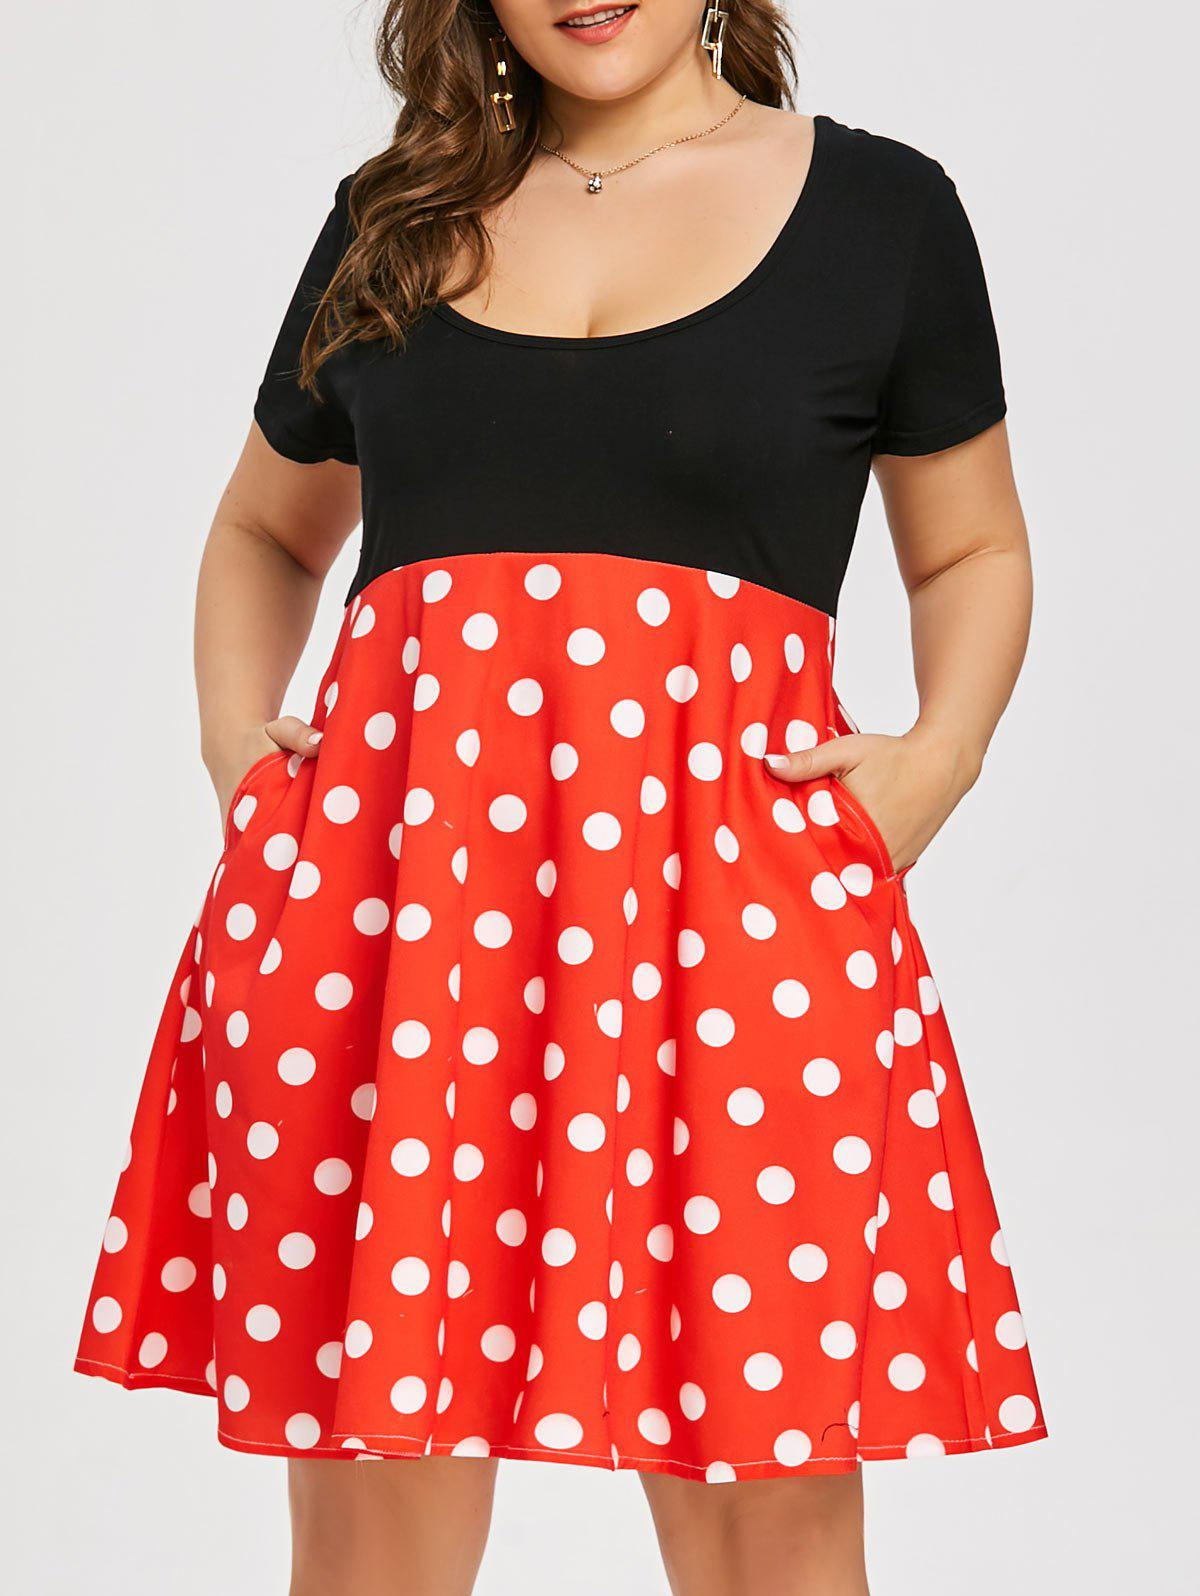 Hot Polka Dot Print Plus Size Vintage Flare Dress